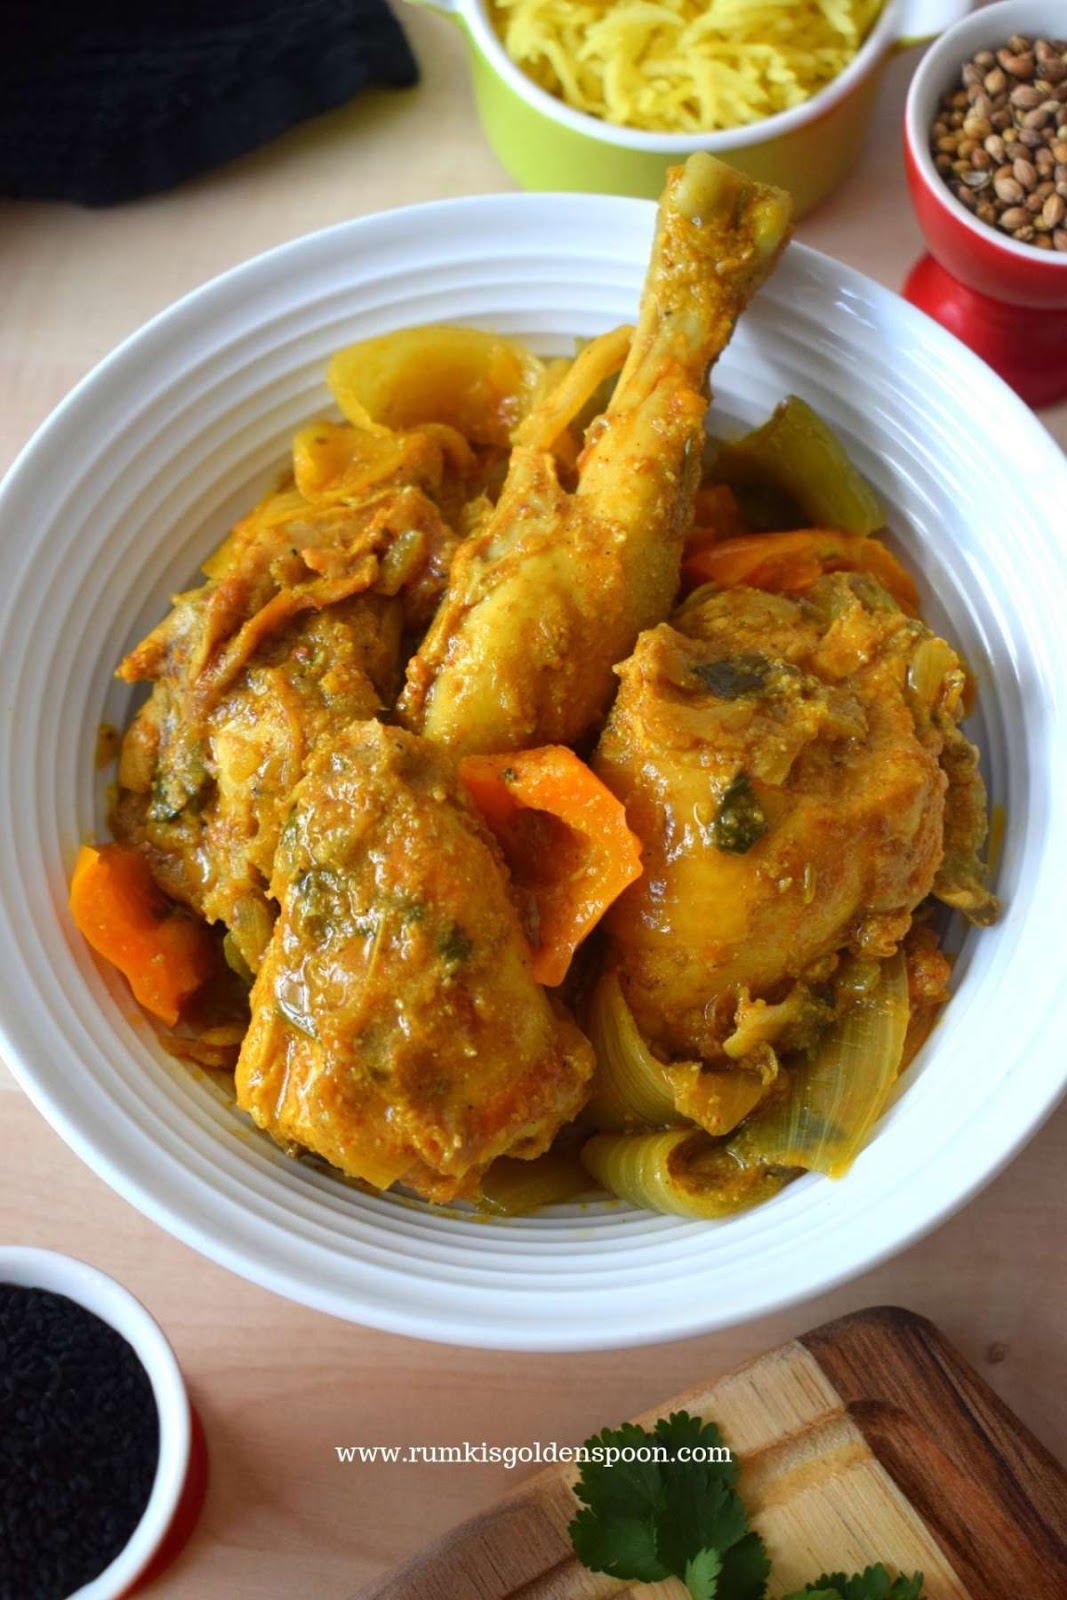 karahi chicken, Kadai Chicken, how to make karahi chicken, chicken curry recipe Indian, best chicken curry recipe, karahi chicken recipe, kadai murgh, karahi murgh, gosht karahi, Chicken Curry, Rumki's Golden Spoon